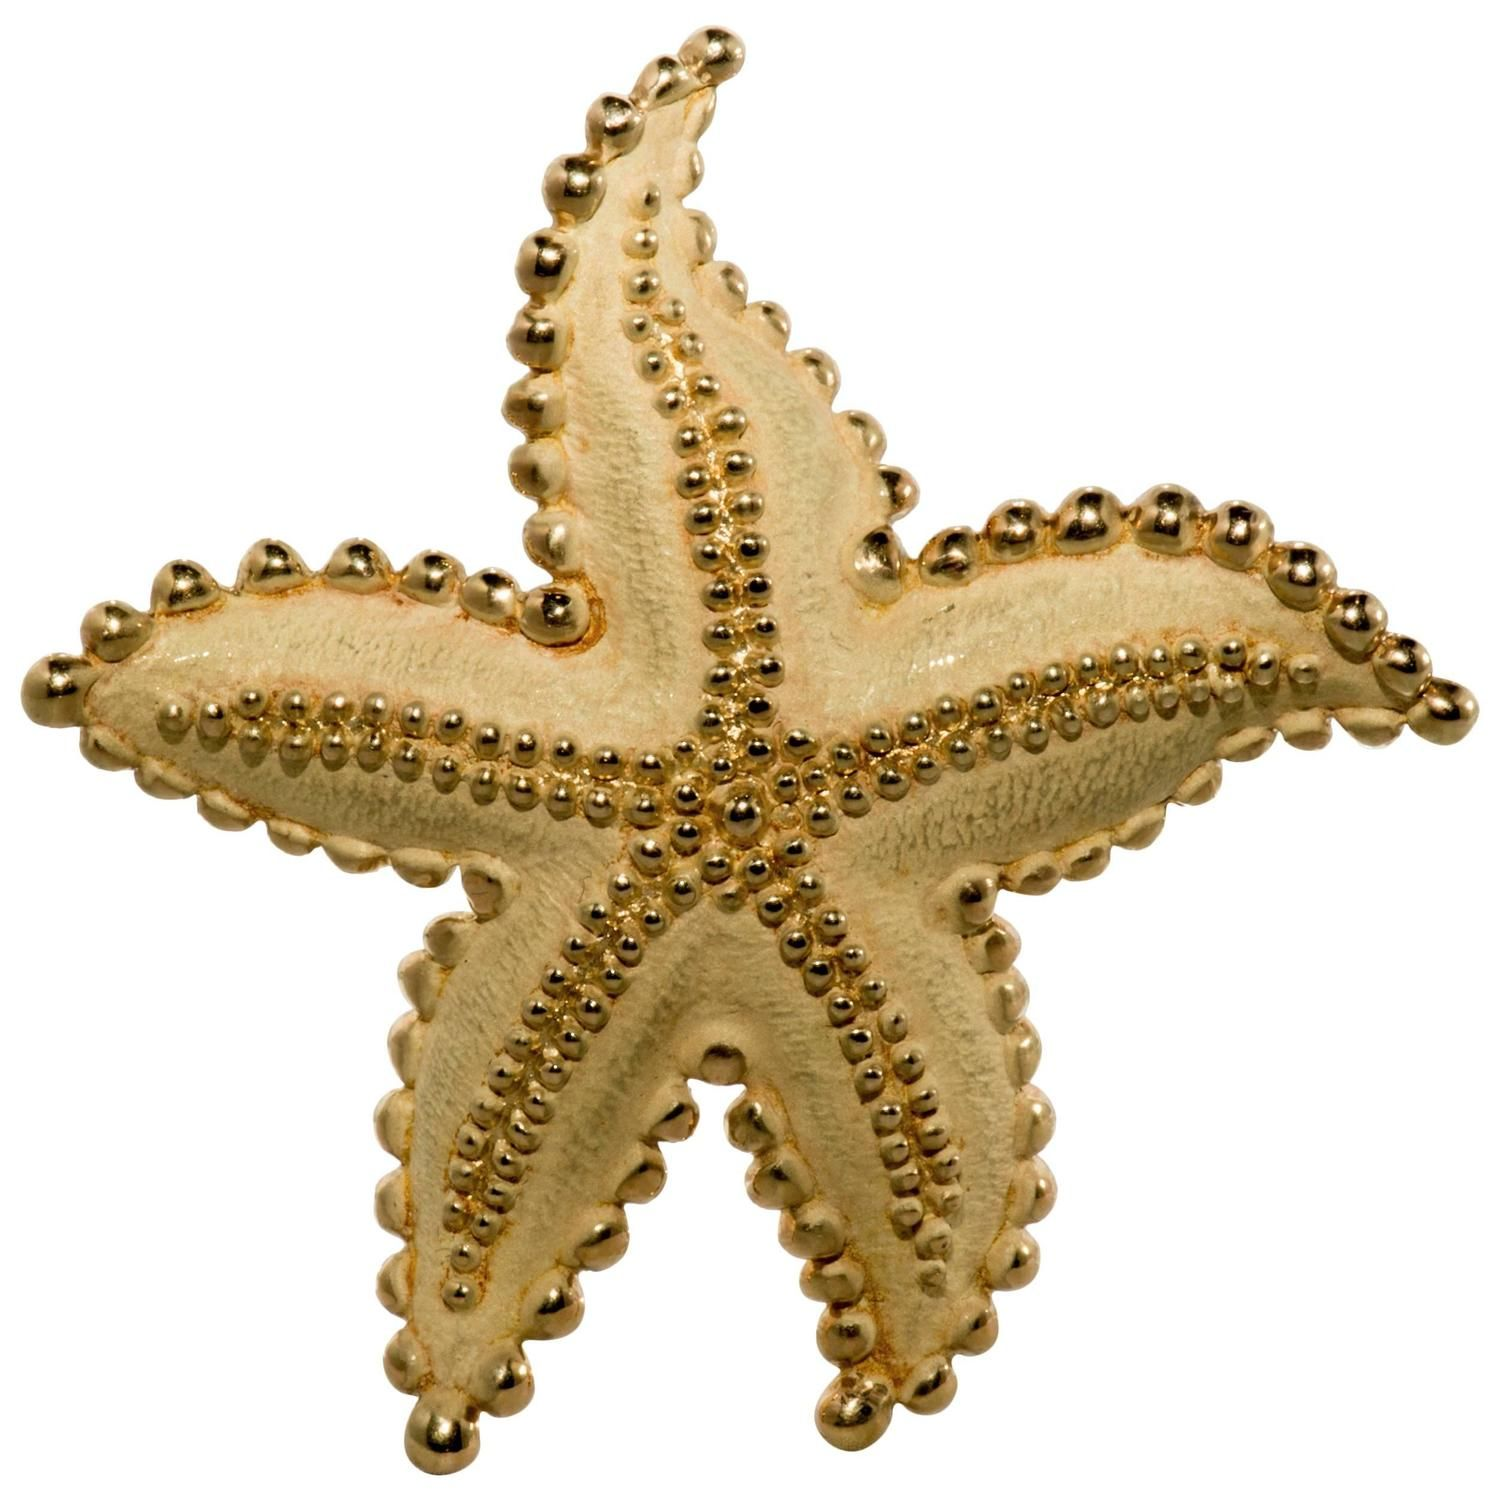 3f562a10c Tiffany & Co. Gold Starfish Brooch | From a unique collection of  vintage brooches